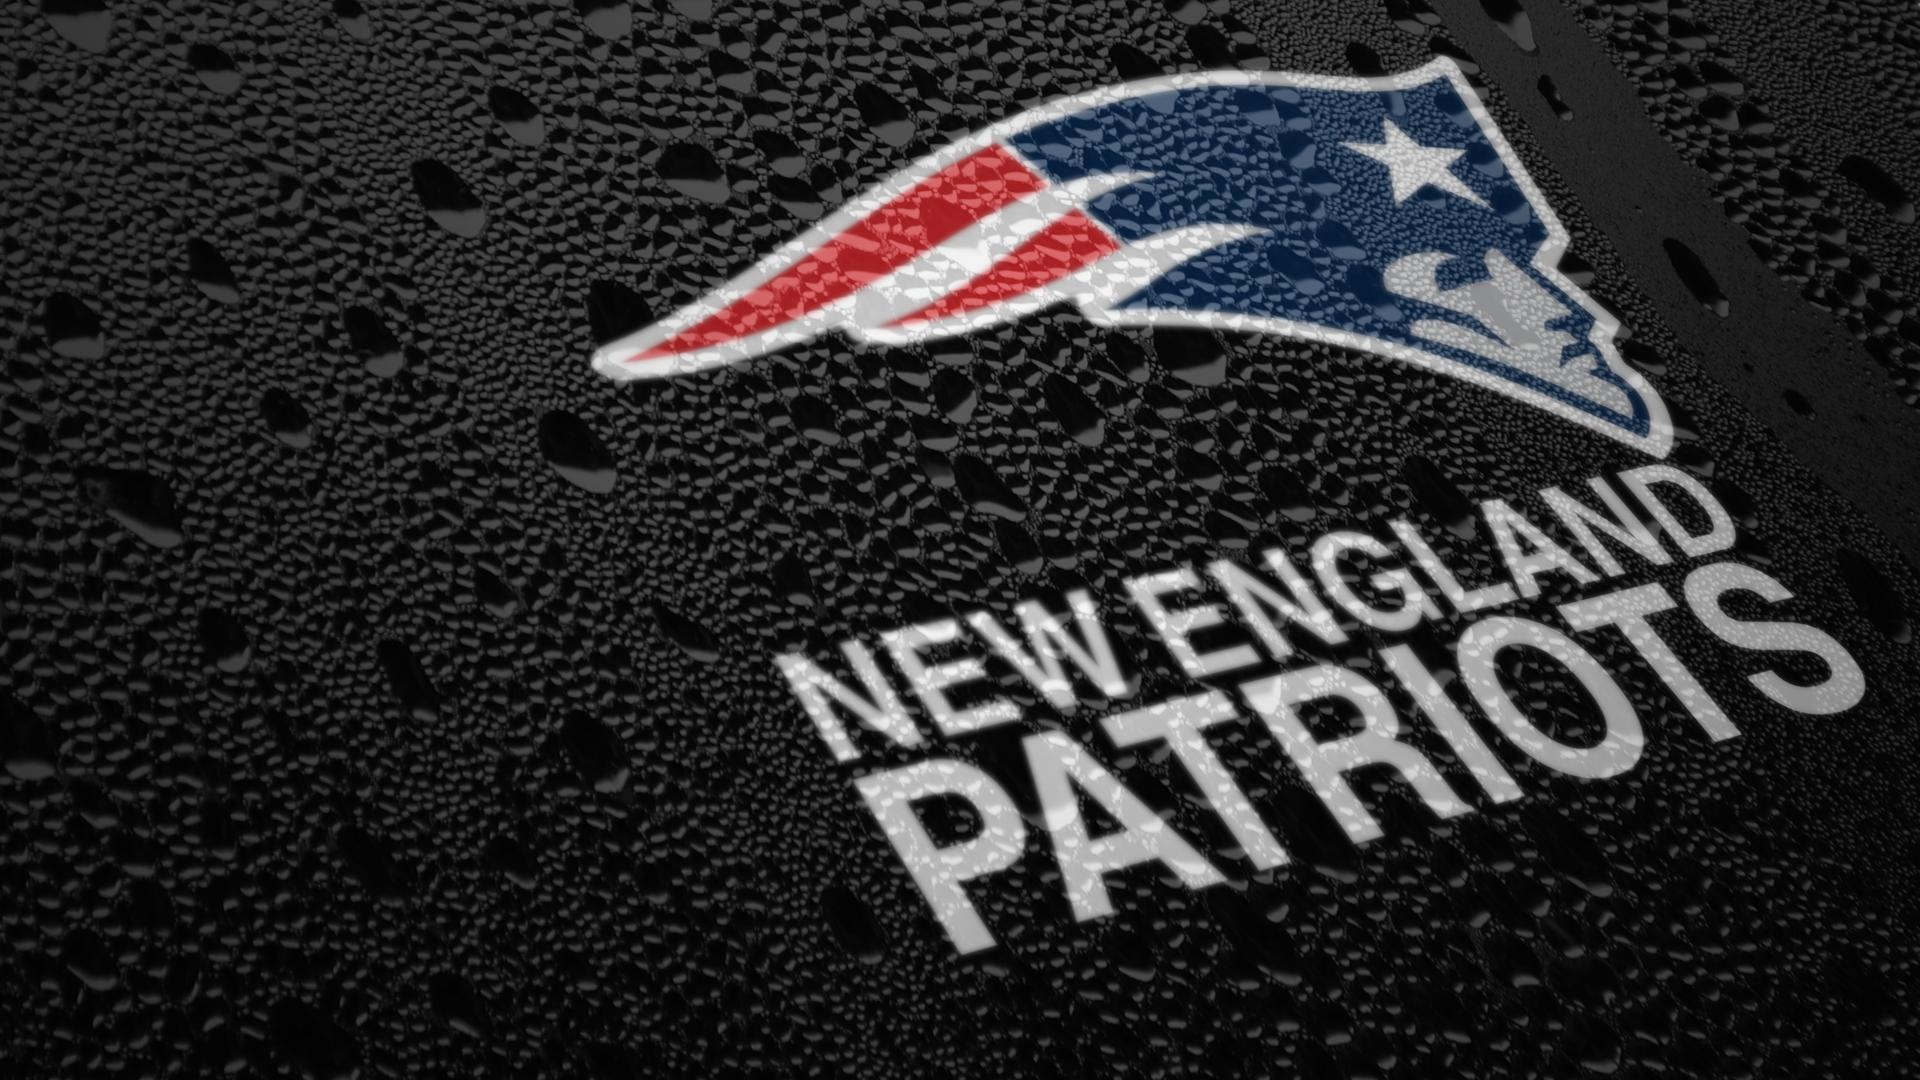 New England Patriots Wallpapers HD | Wallpapers, Backgrounds ...